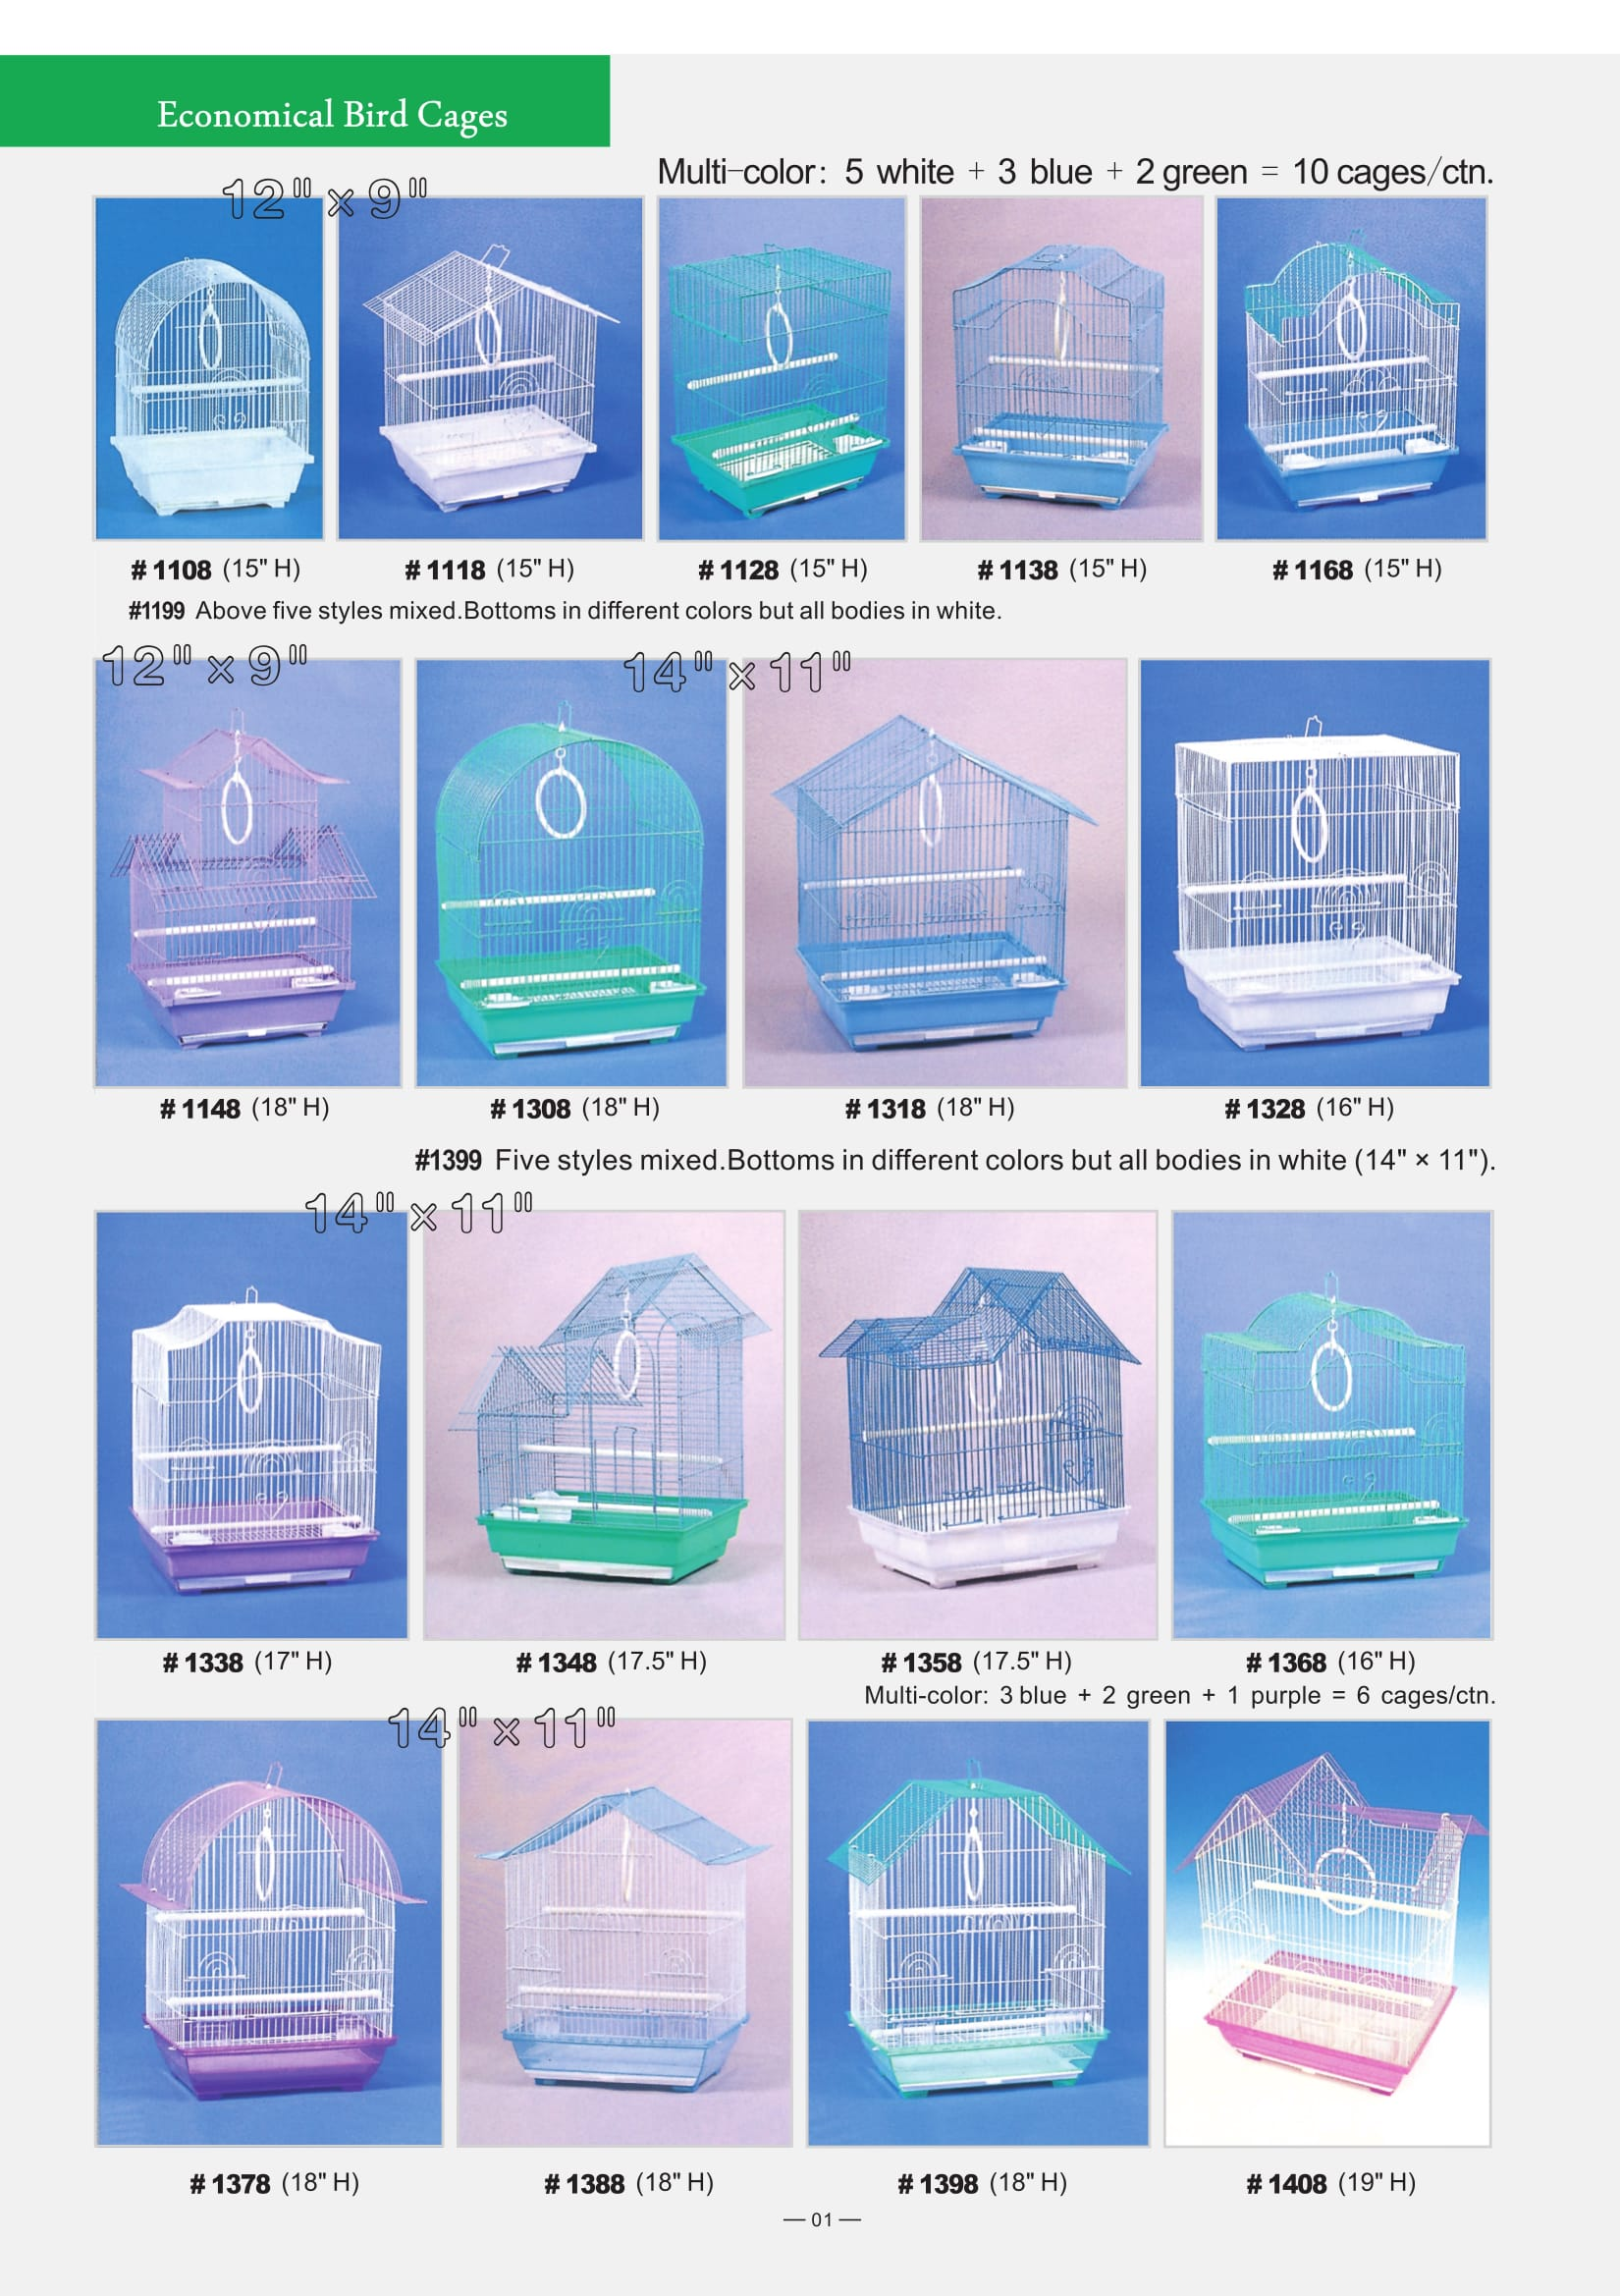 2. Economical Bird Cages Part 1-1